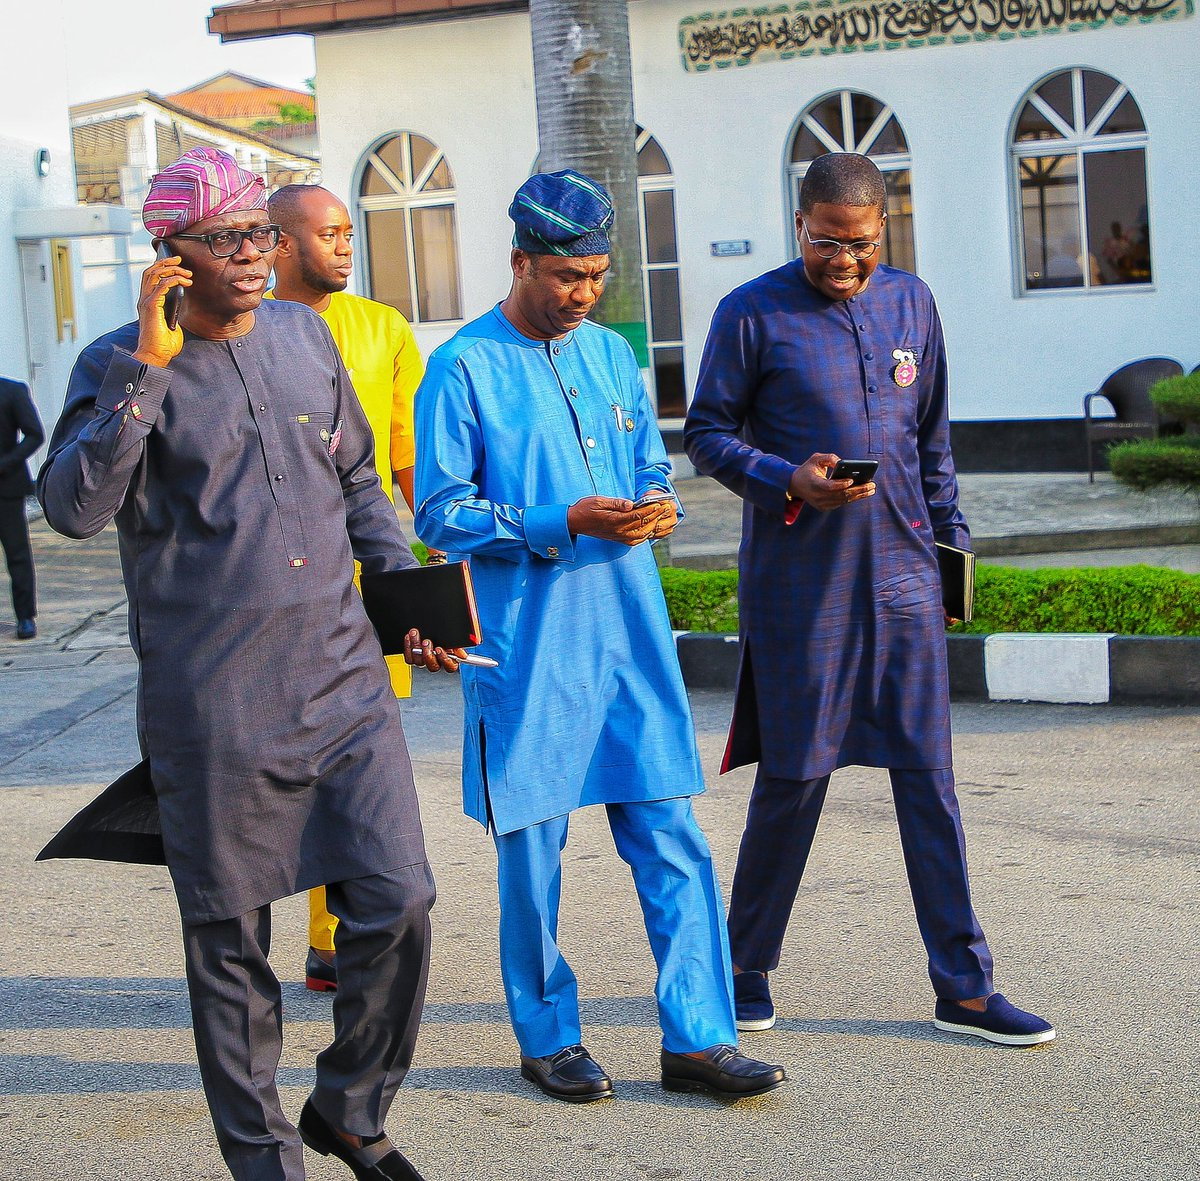 The best teamwork comes from men who are working independently towards one goal in unison. BOS KOH HMO #ForAGreaterLagos<br>http://pic.twitter.com/xrDb64bXYy